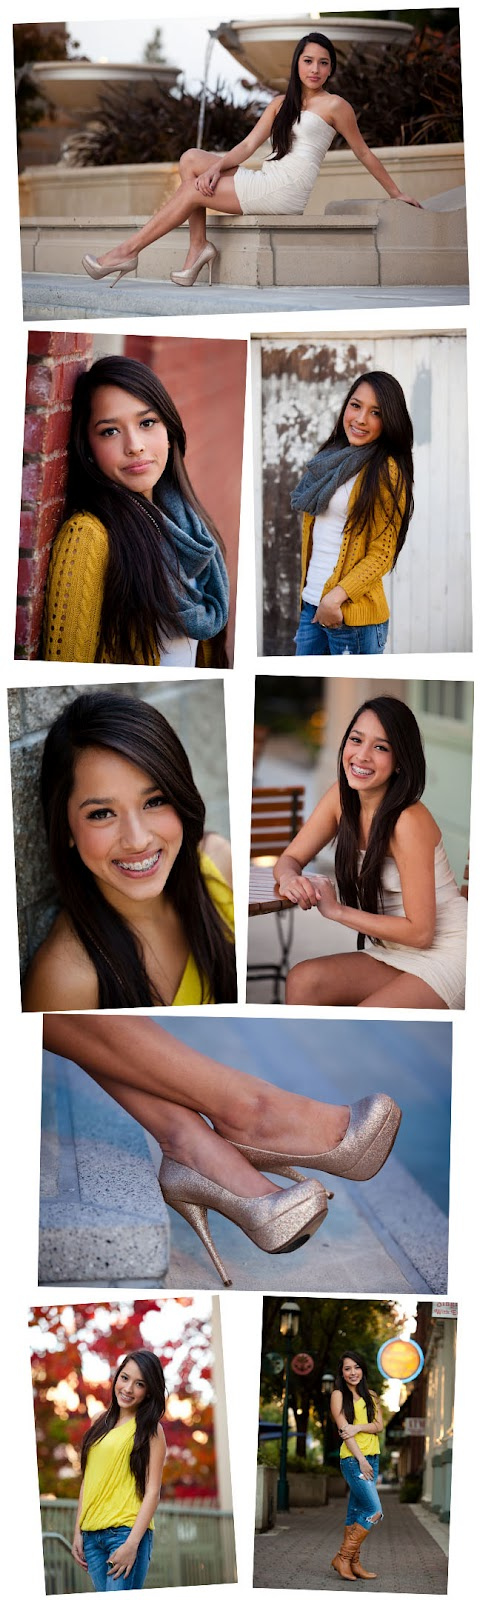 bay area, san mateo, burlingame, atherton, woodside, palo alto, menlo park, hillsborough, san carlos, redwood city, san francisco, millbrae, high school senior portraits by still light studios